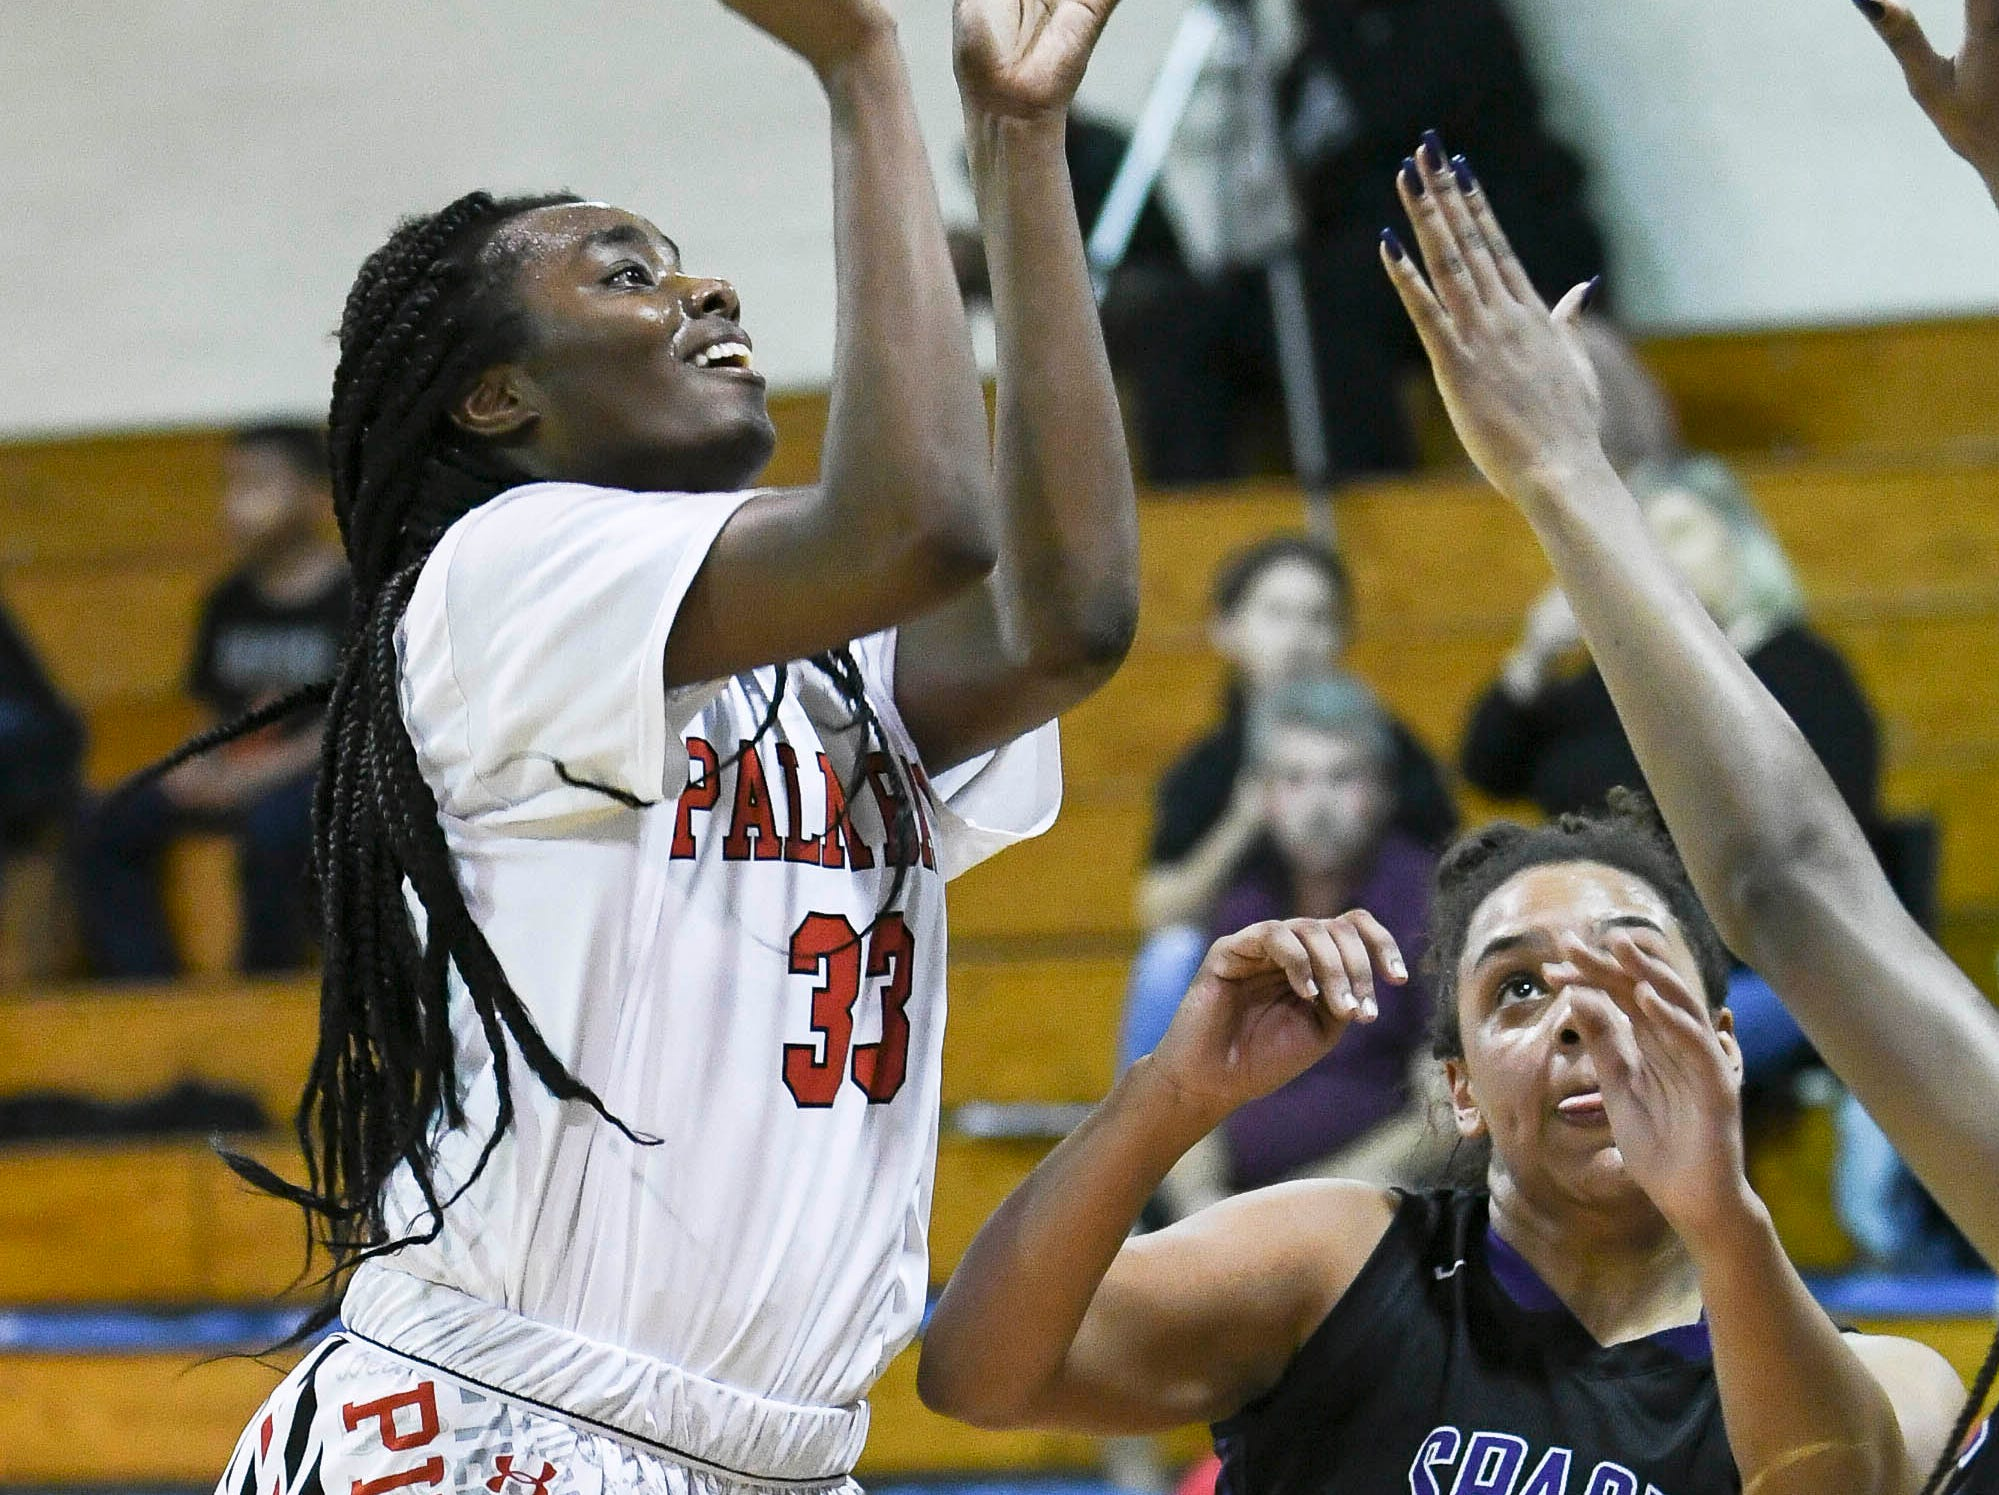 Emani Burks of Palm Bay shoots over Teagan Rothiock of Space Coast during Thursday's District 14-6A basketball tournament at Rockledge High School.